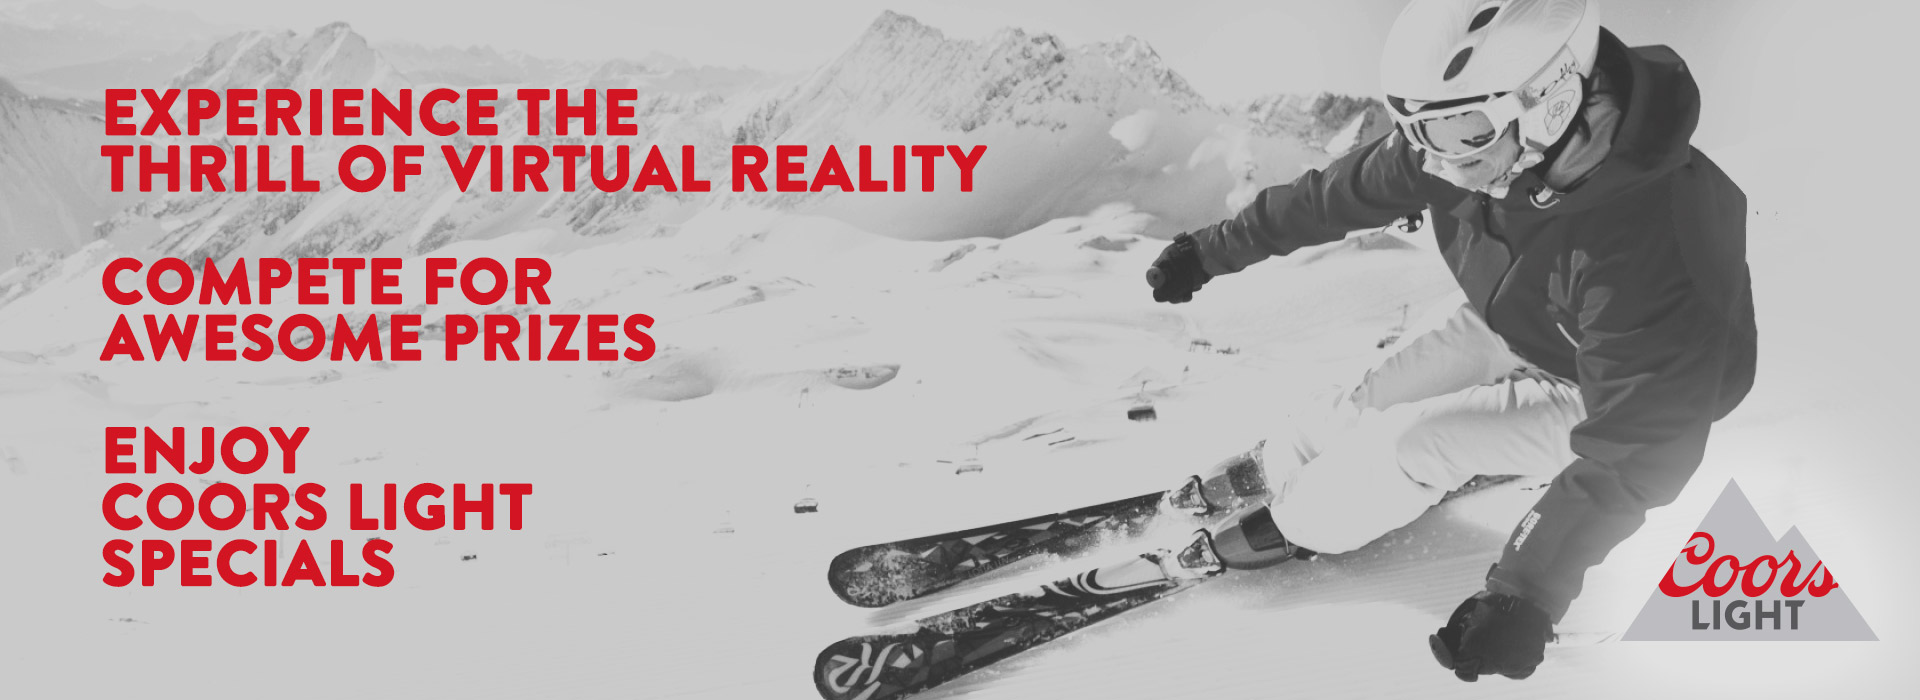 Coors Light Virtual Reality Adventure